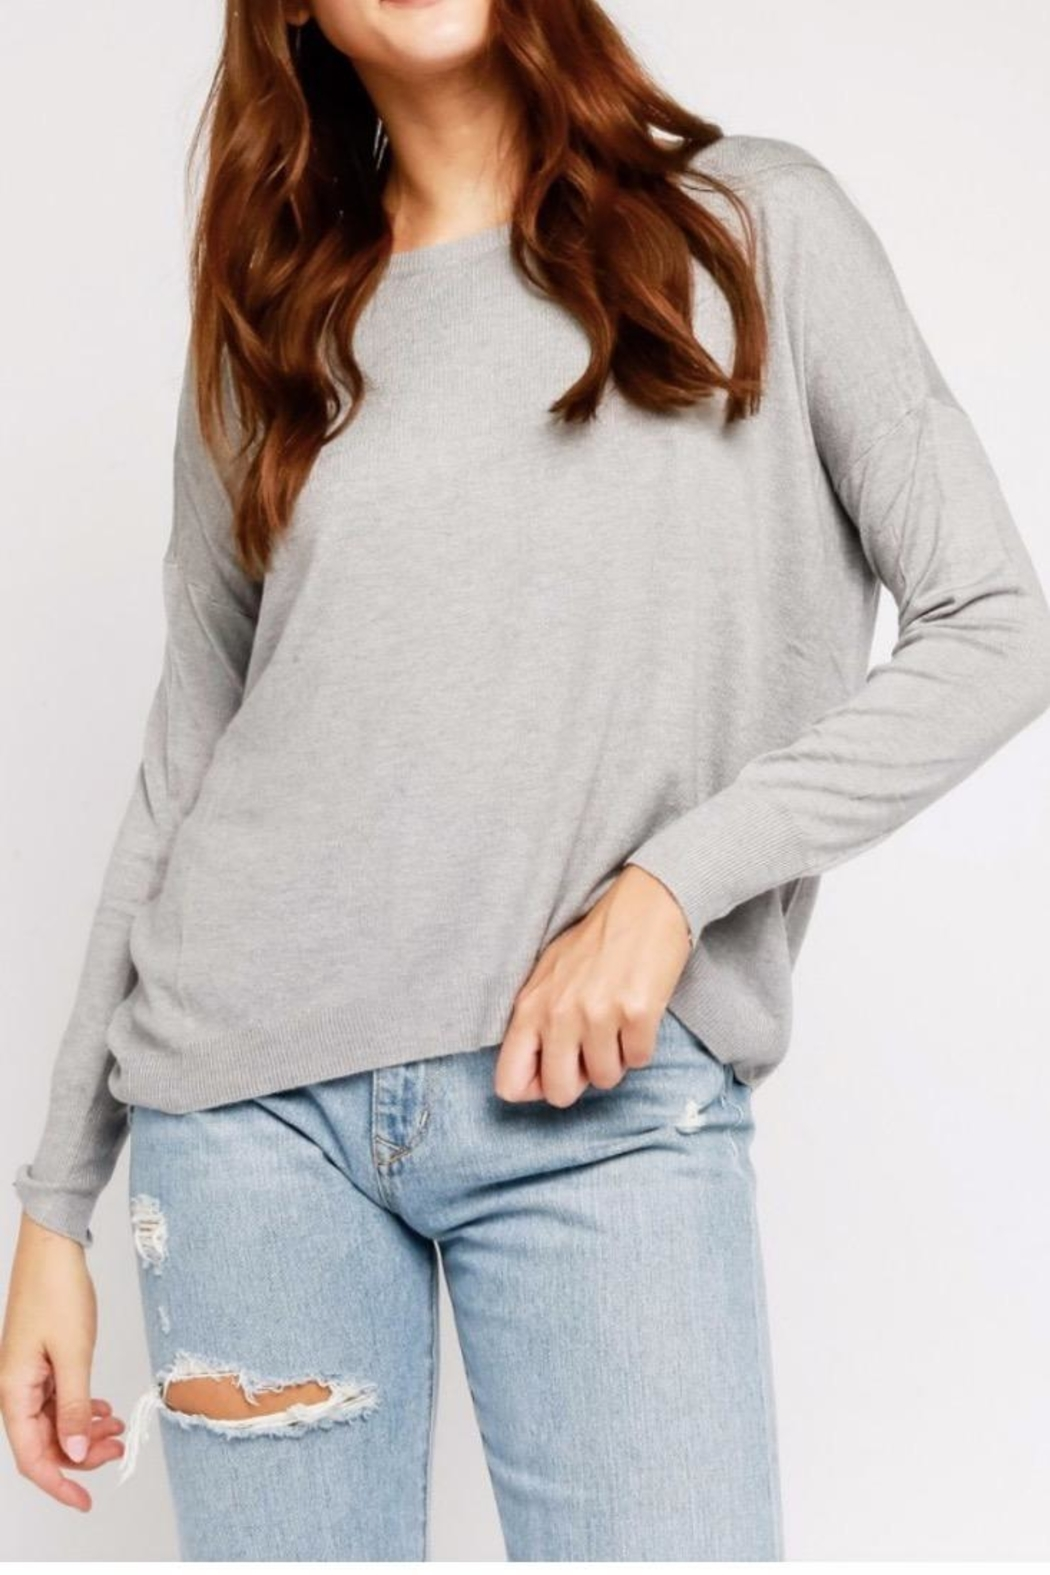 Olivaceous Grey Back-Zipper Sweater - Main Image